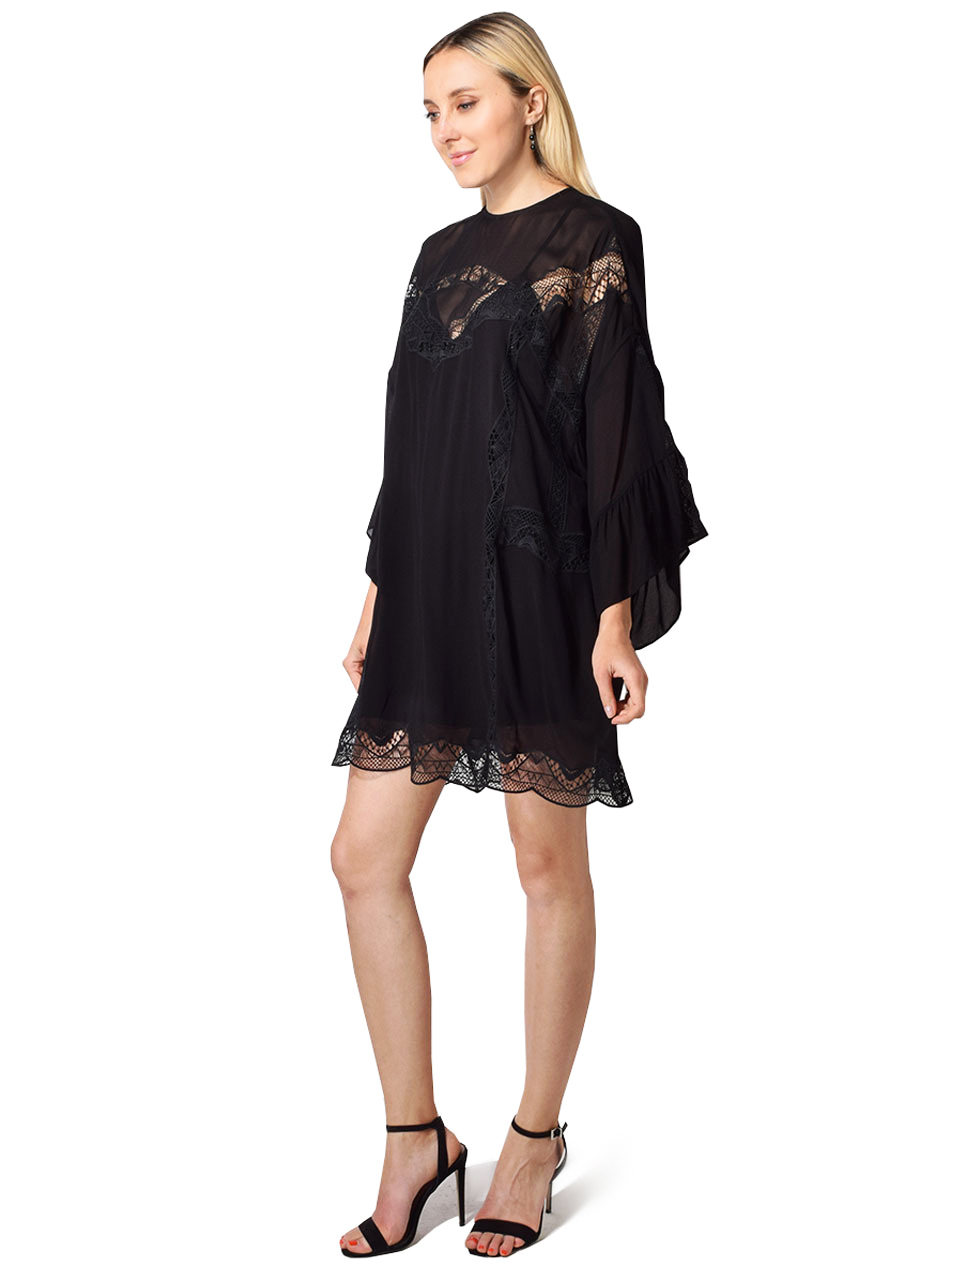 IRO Favila Embroidered Lace Dress in Black